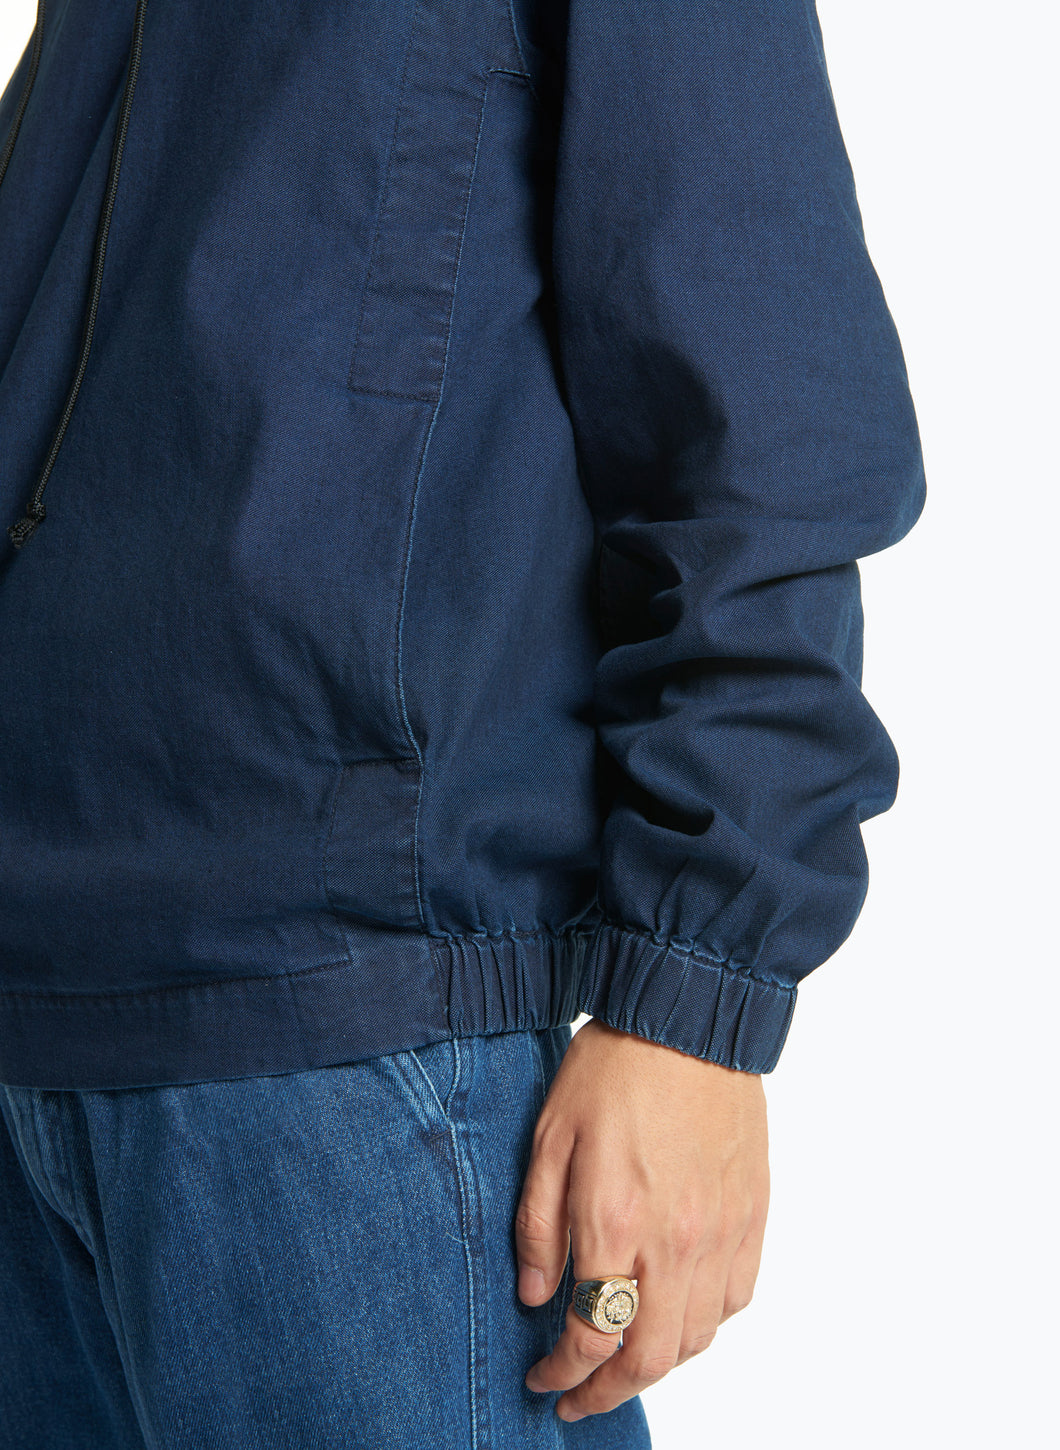 Hooded Sweatshirt with Side Cutouts in Indigo Denim